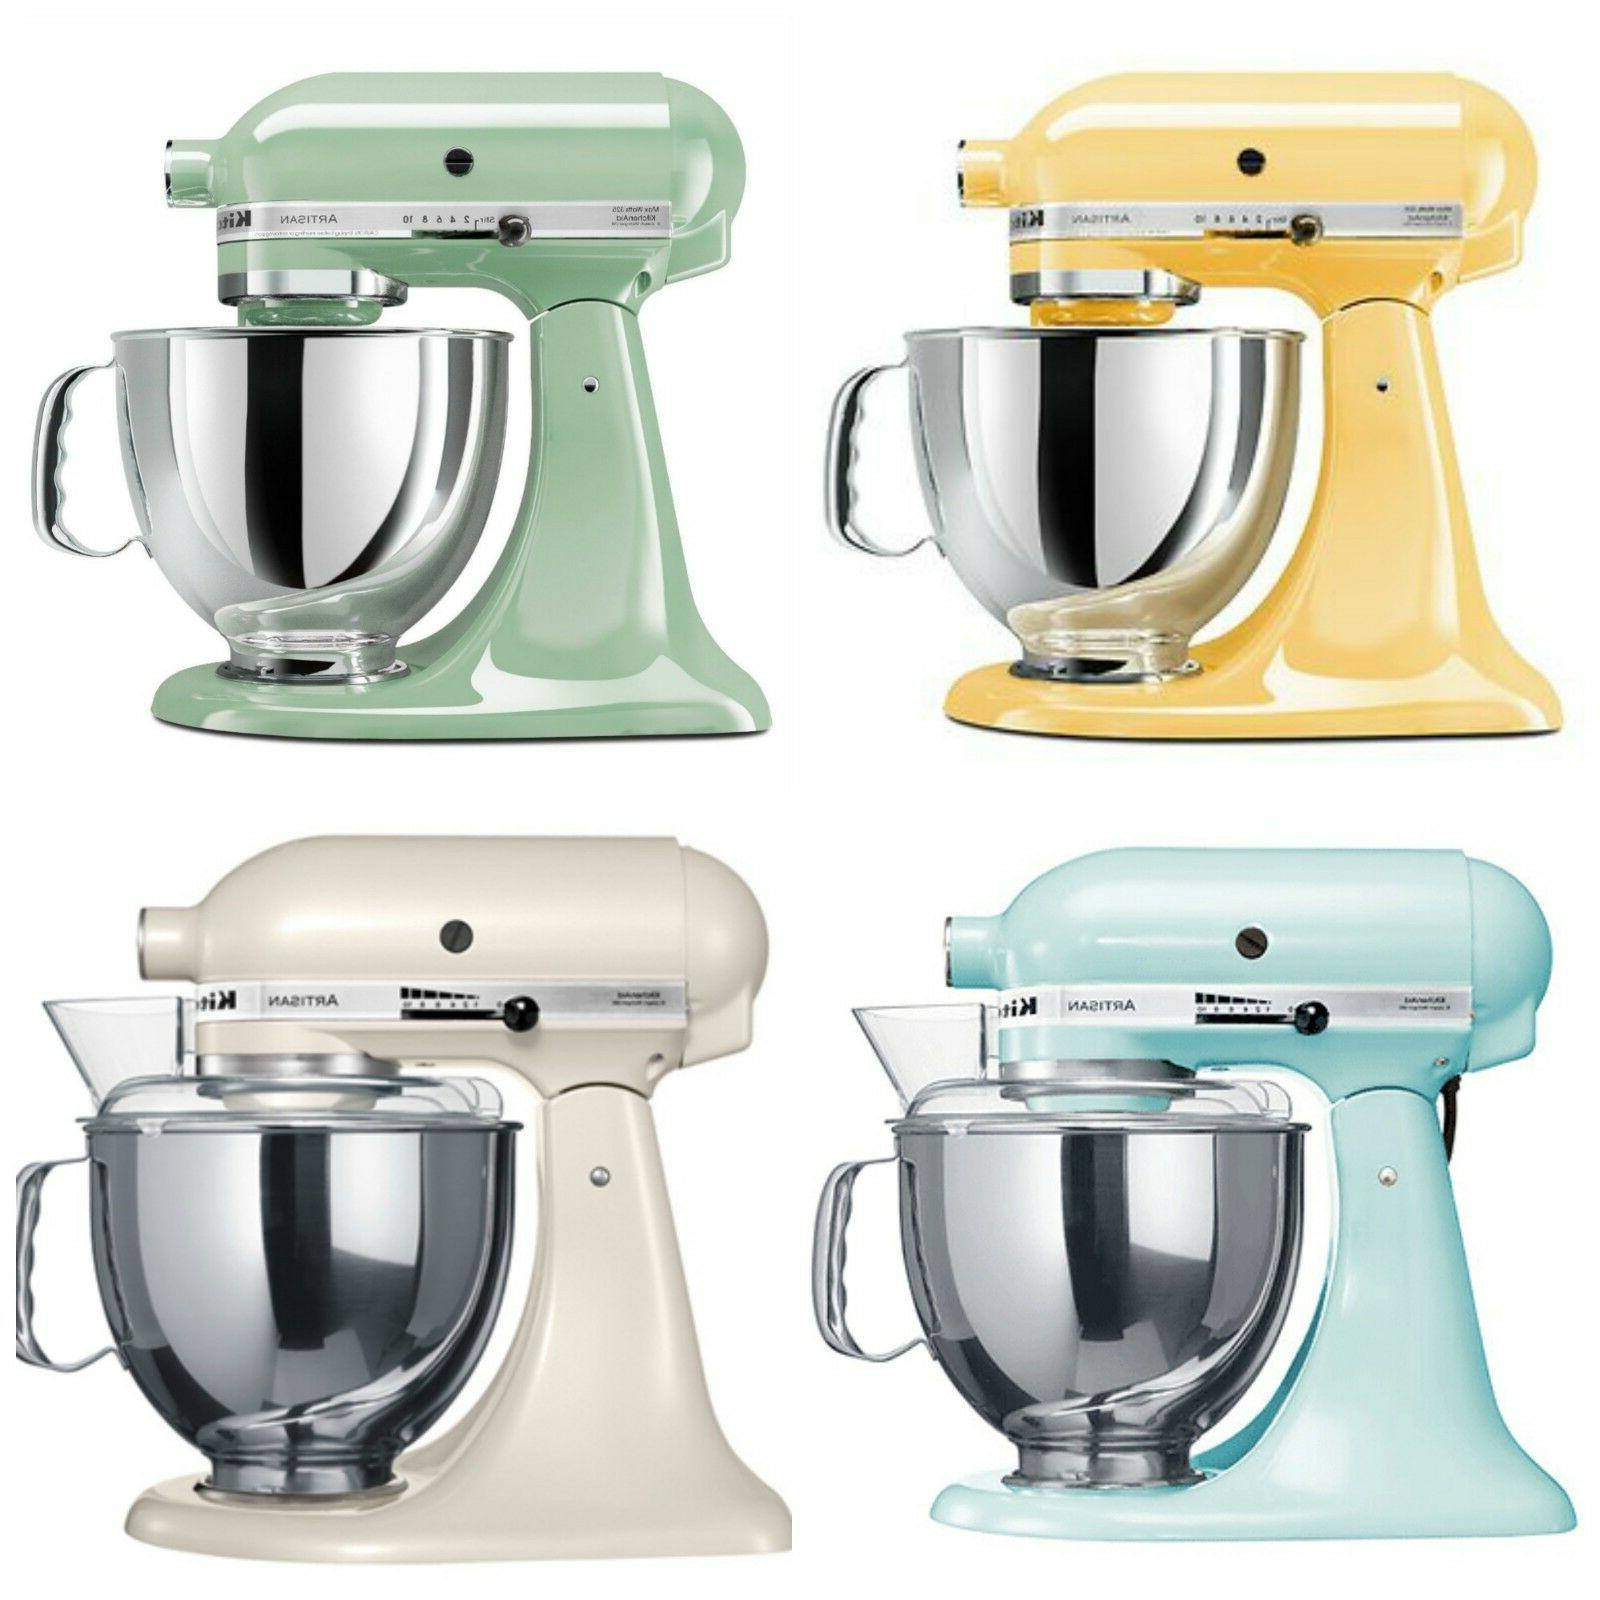 NEW KitchenAid with Pouring Shield,